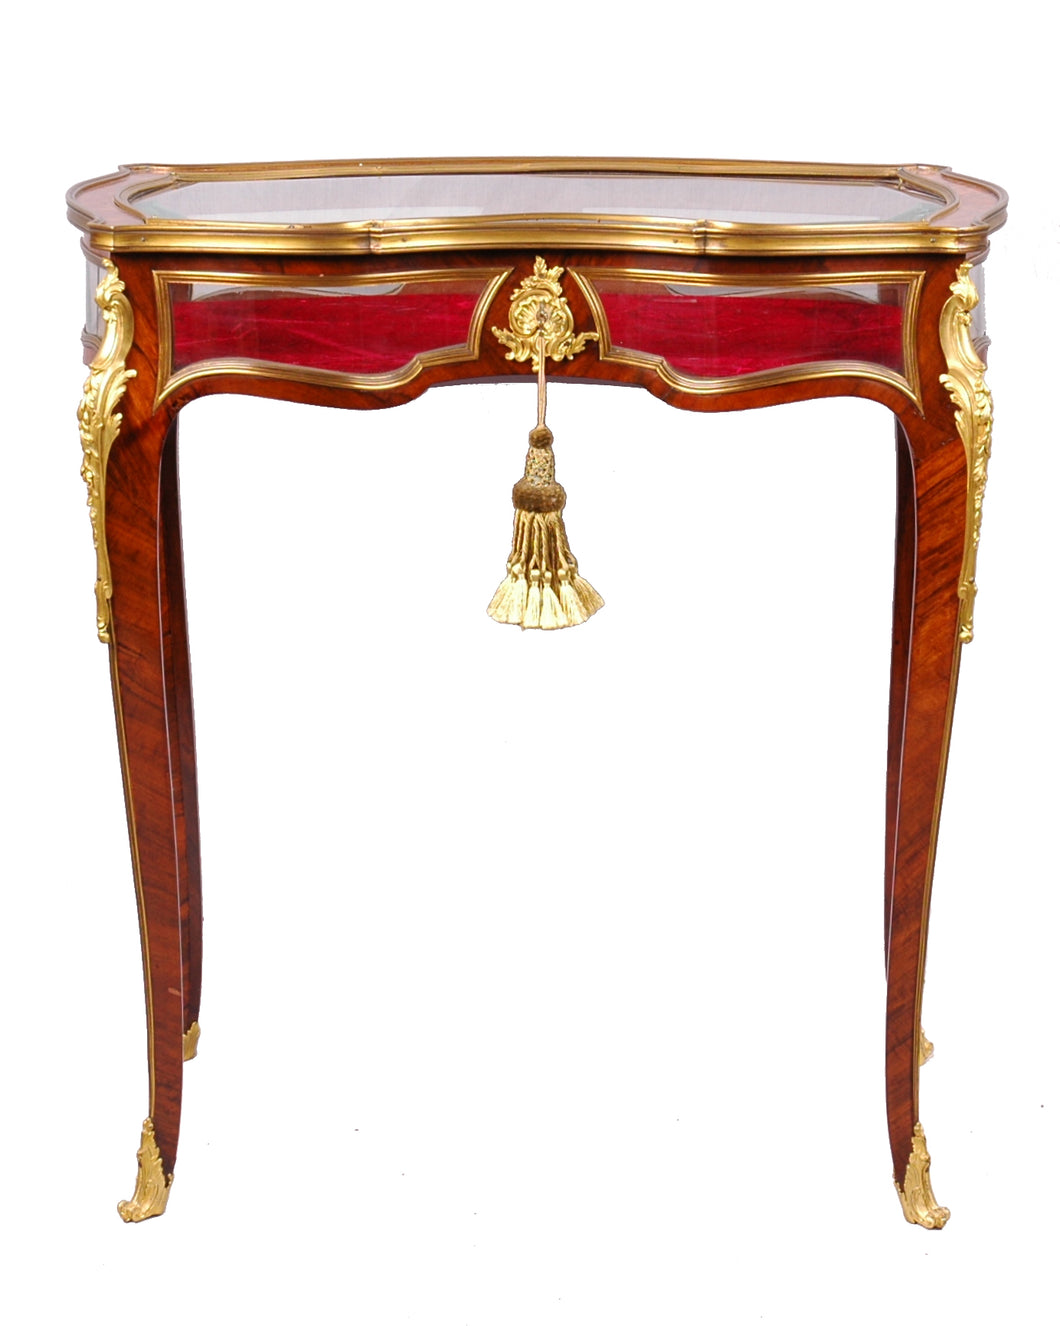 Antique Table Vitrine, Ormolu mounts, Louis XV style, France